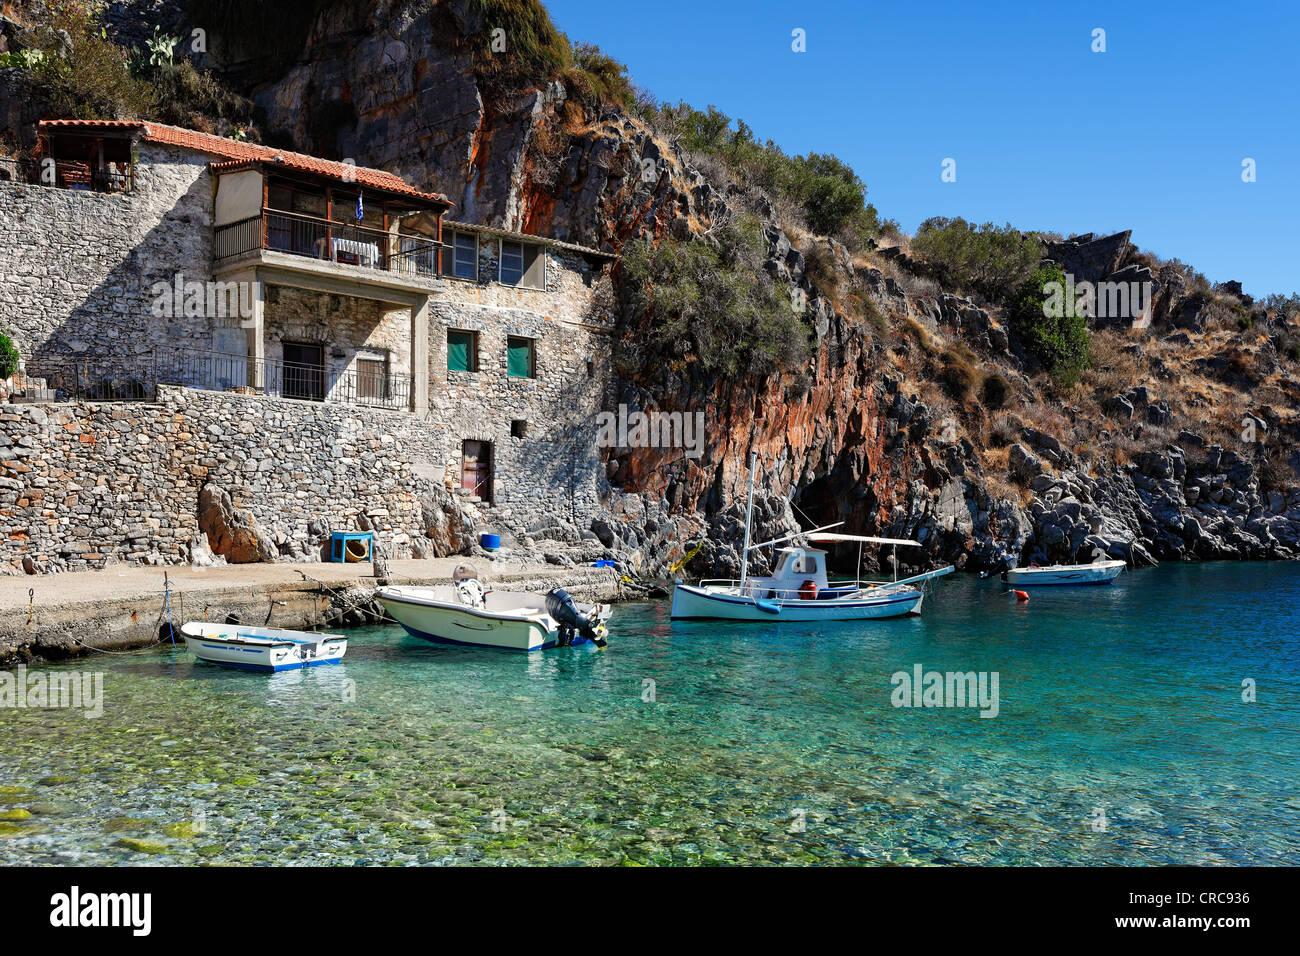 Fishing boats in the village Alypa in Eastern Mani, Greece - Stock Image